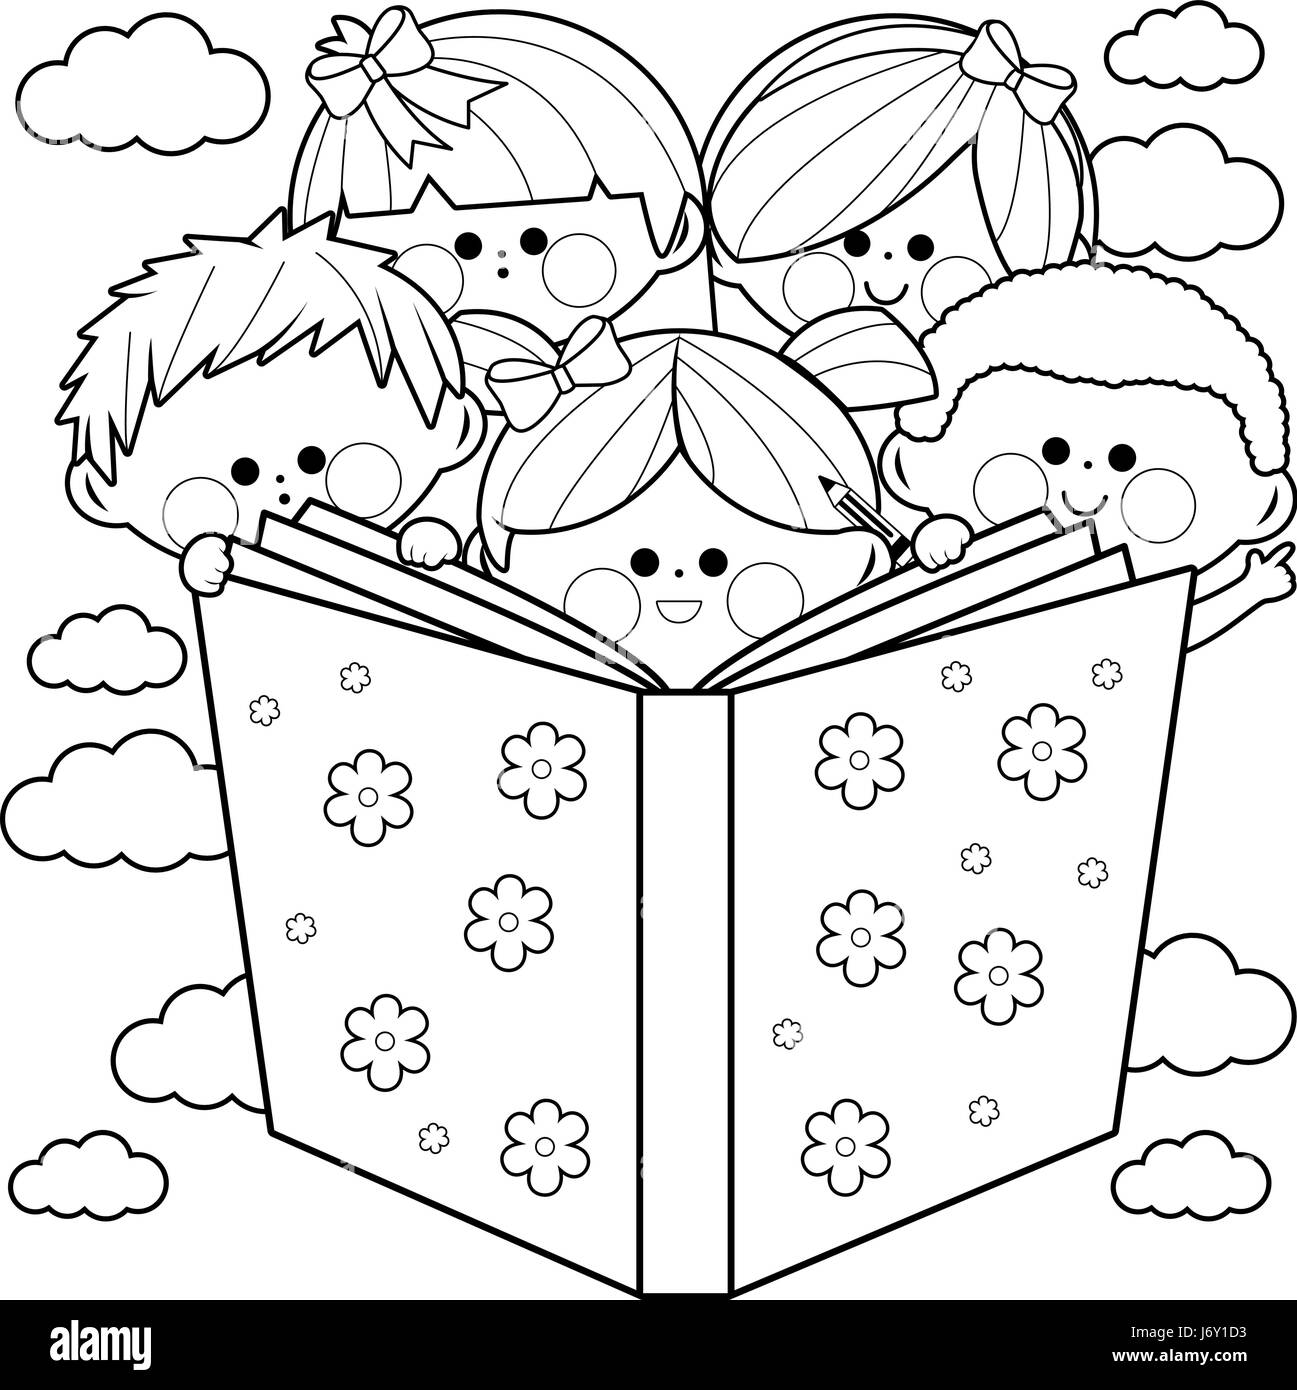 Group of kids reading a book coloring book page